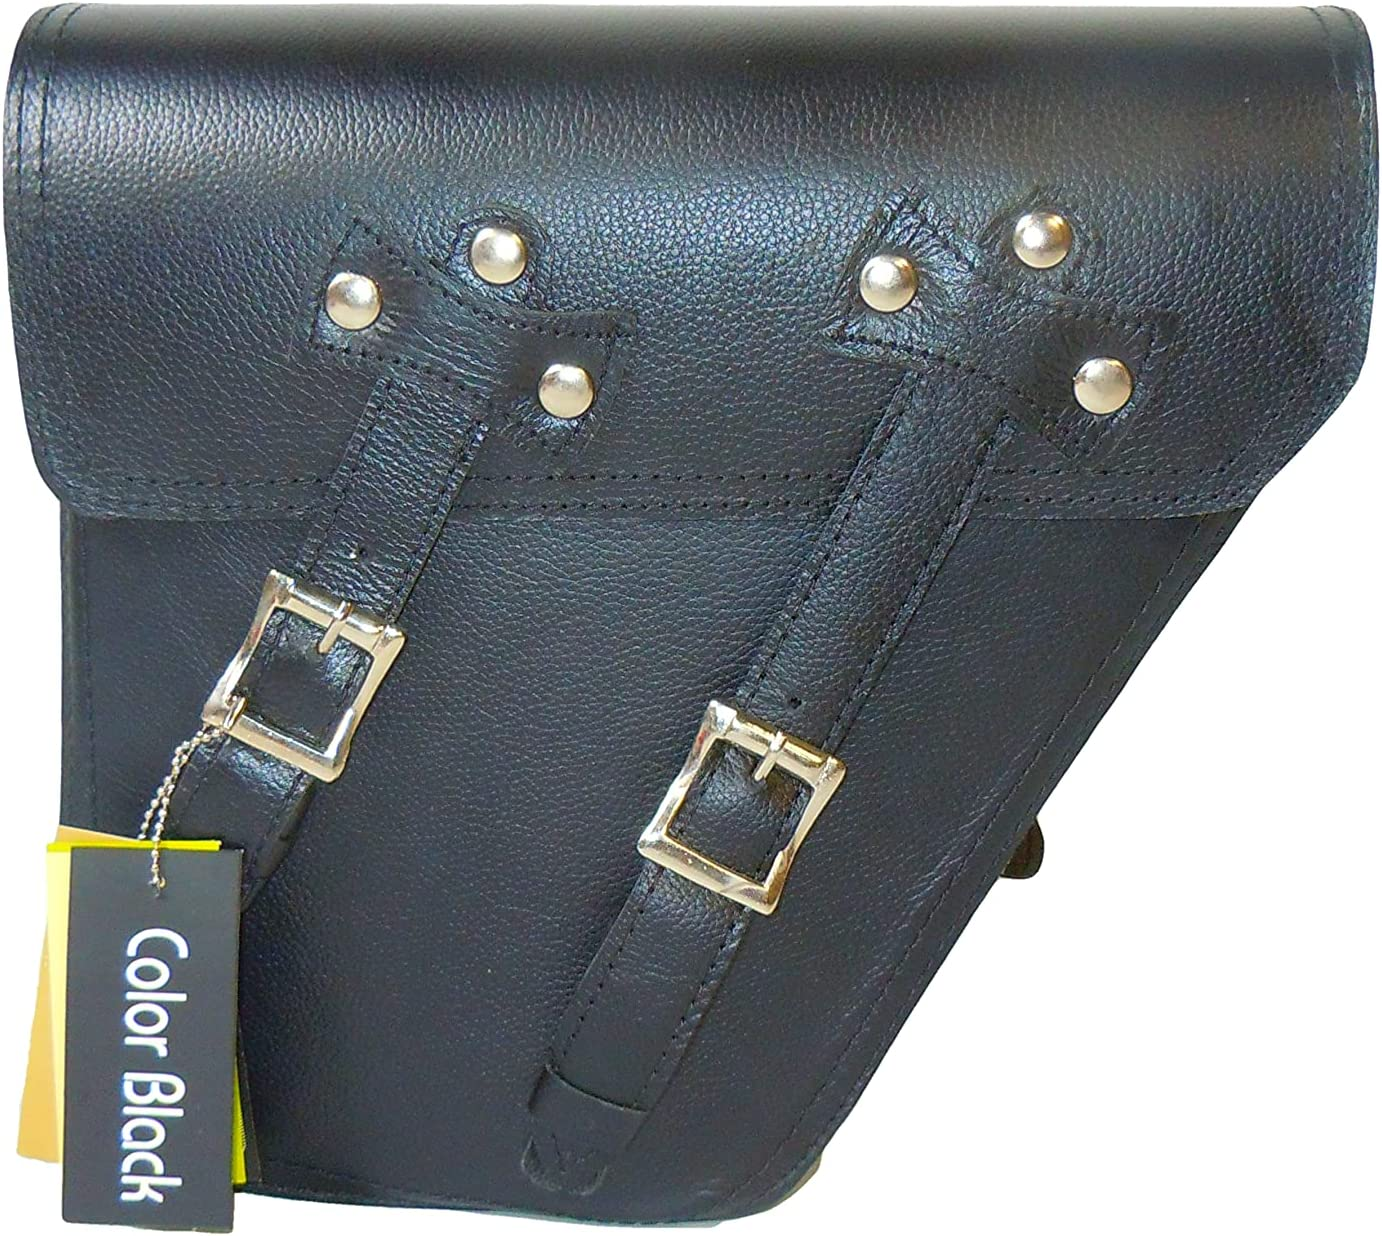 Motorcycle Phoenix Mall Solo Max 88% OFF Bag Two Strap Black 712 Harley Davidson for Dyna